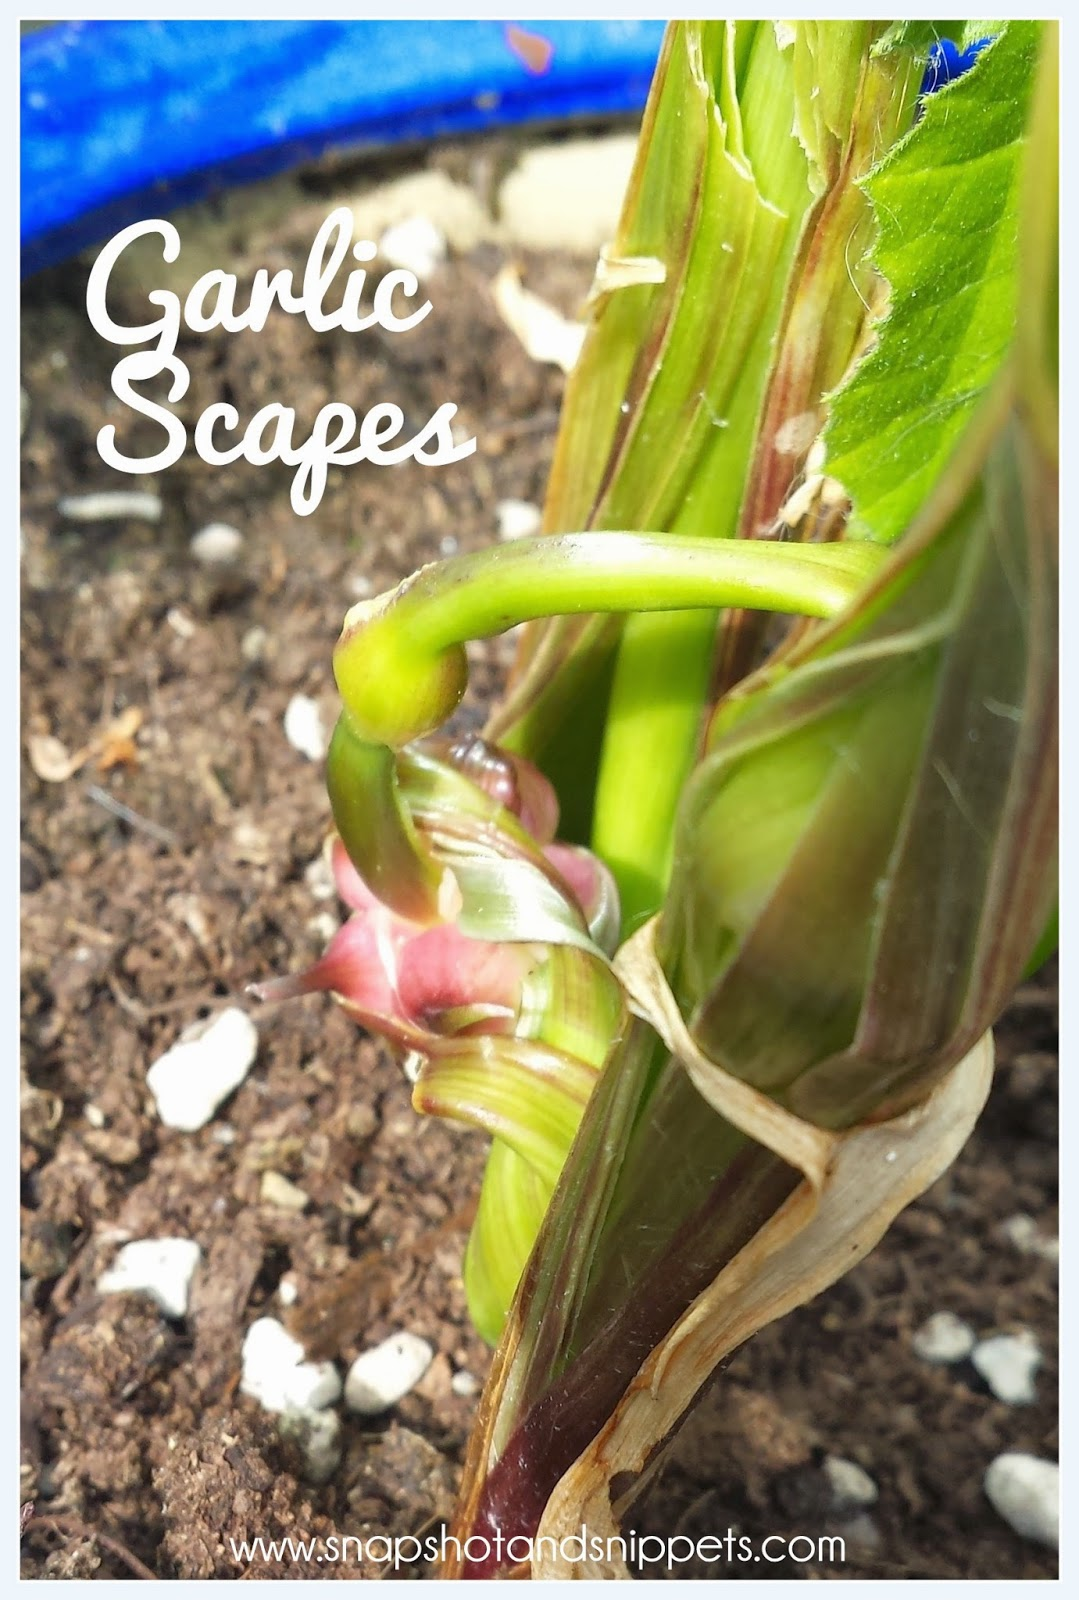 What are Garlic Scapes